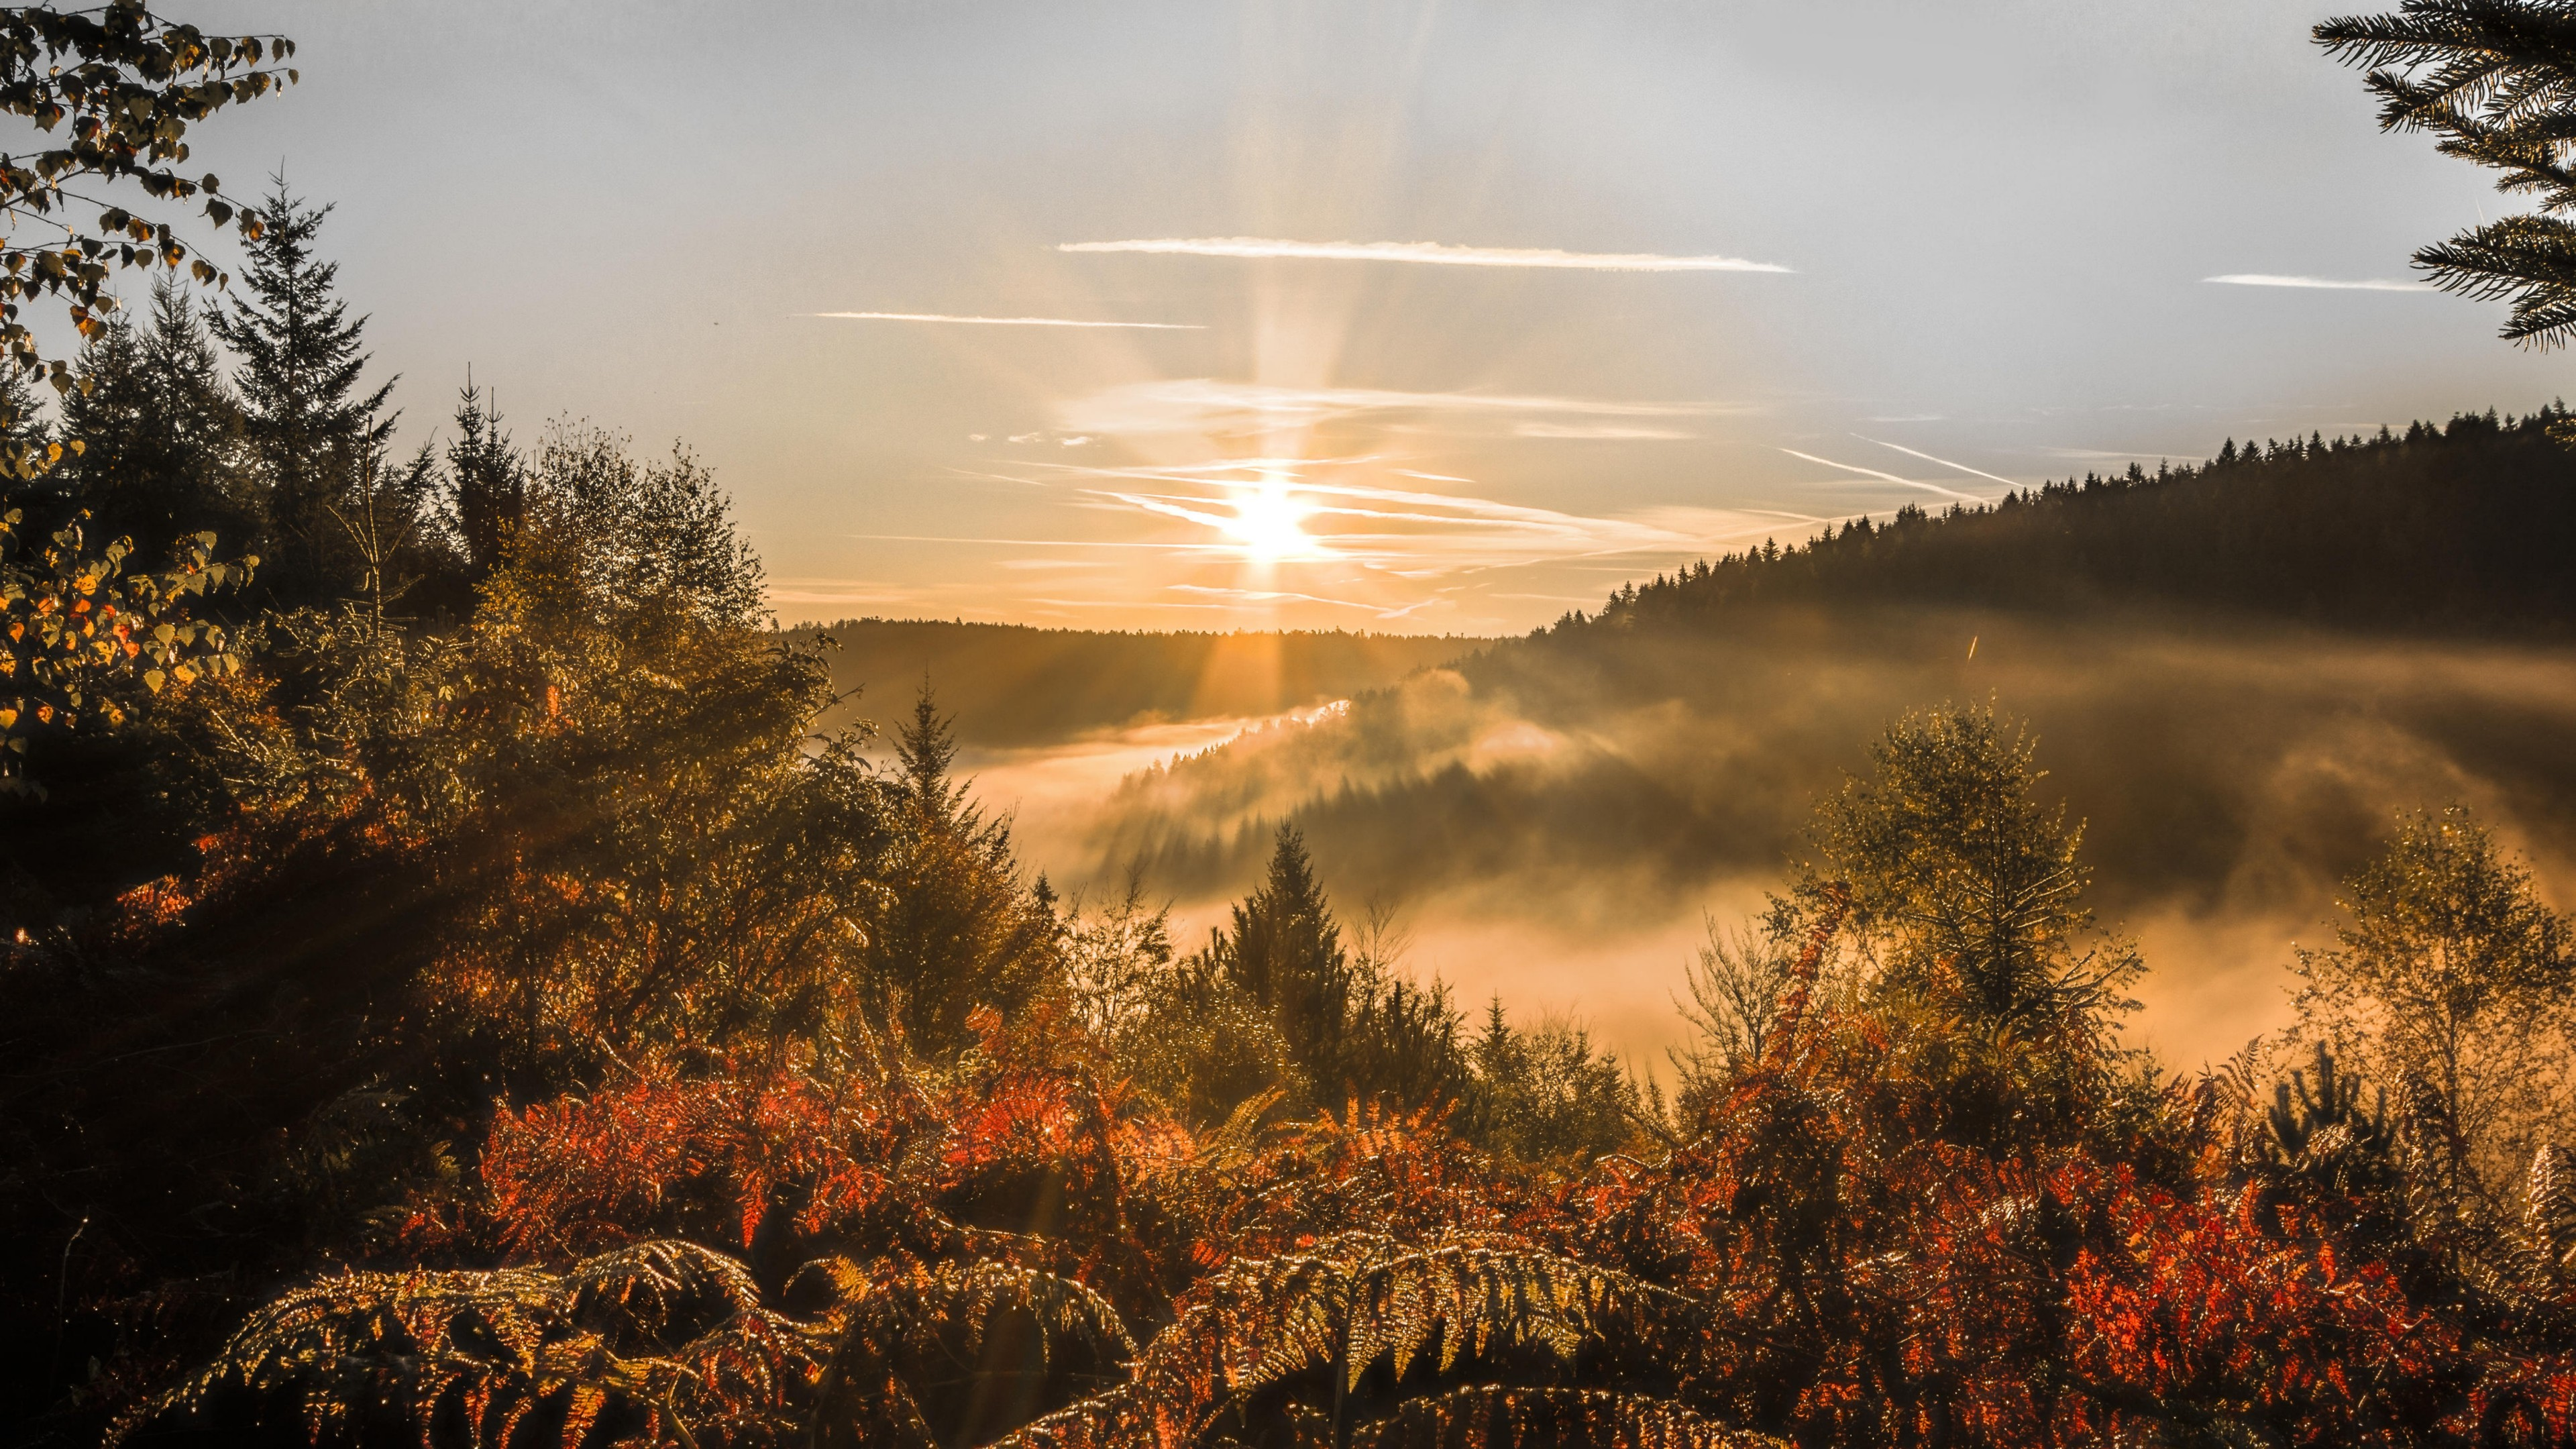 Misty nature at fall wallpaper